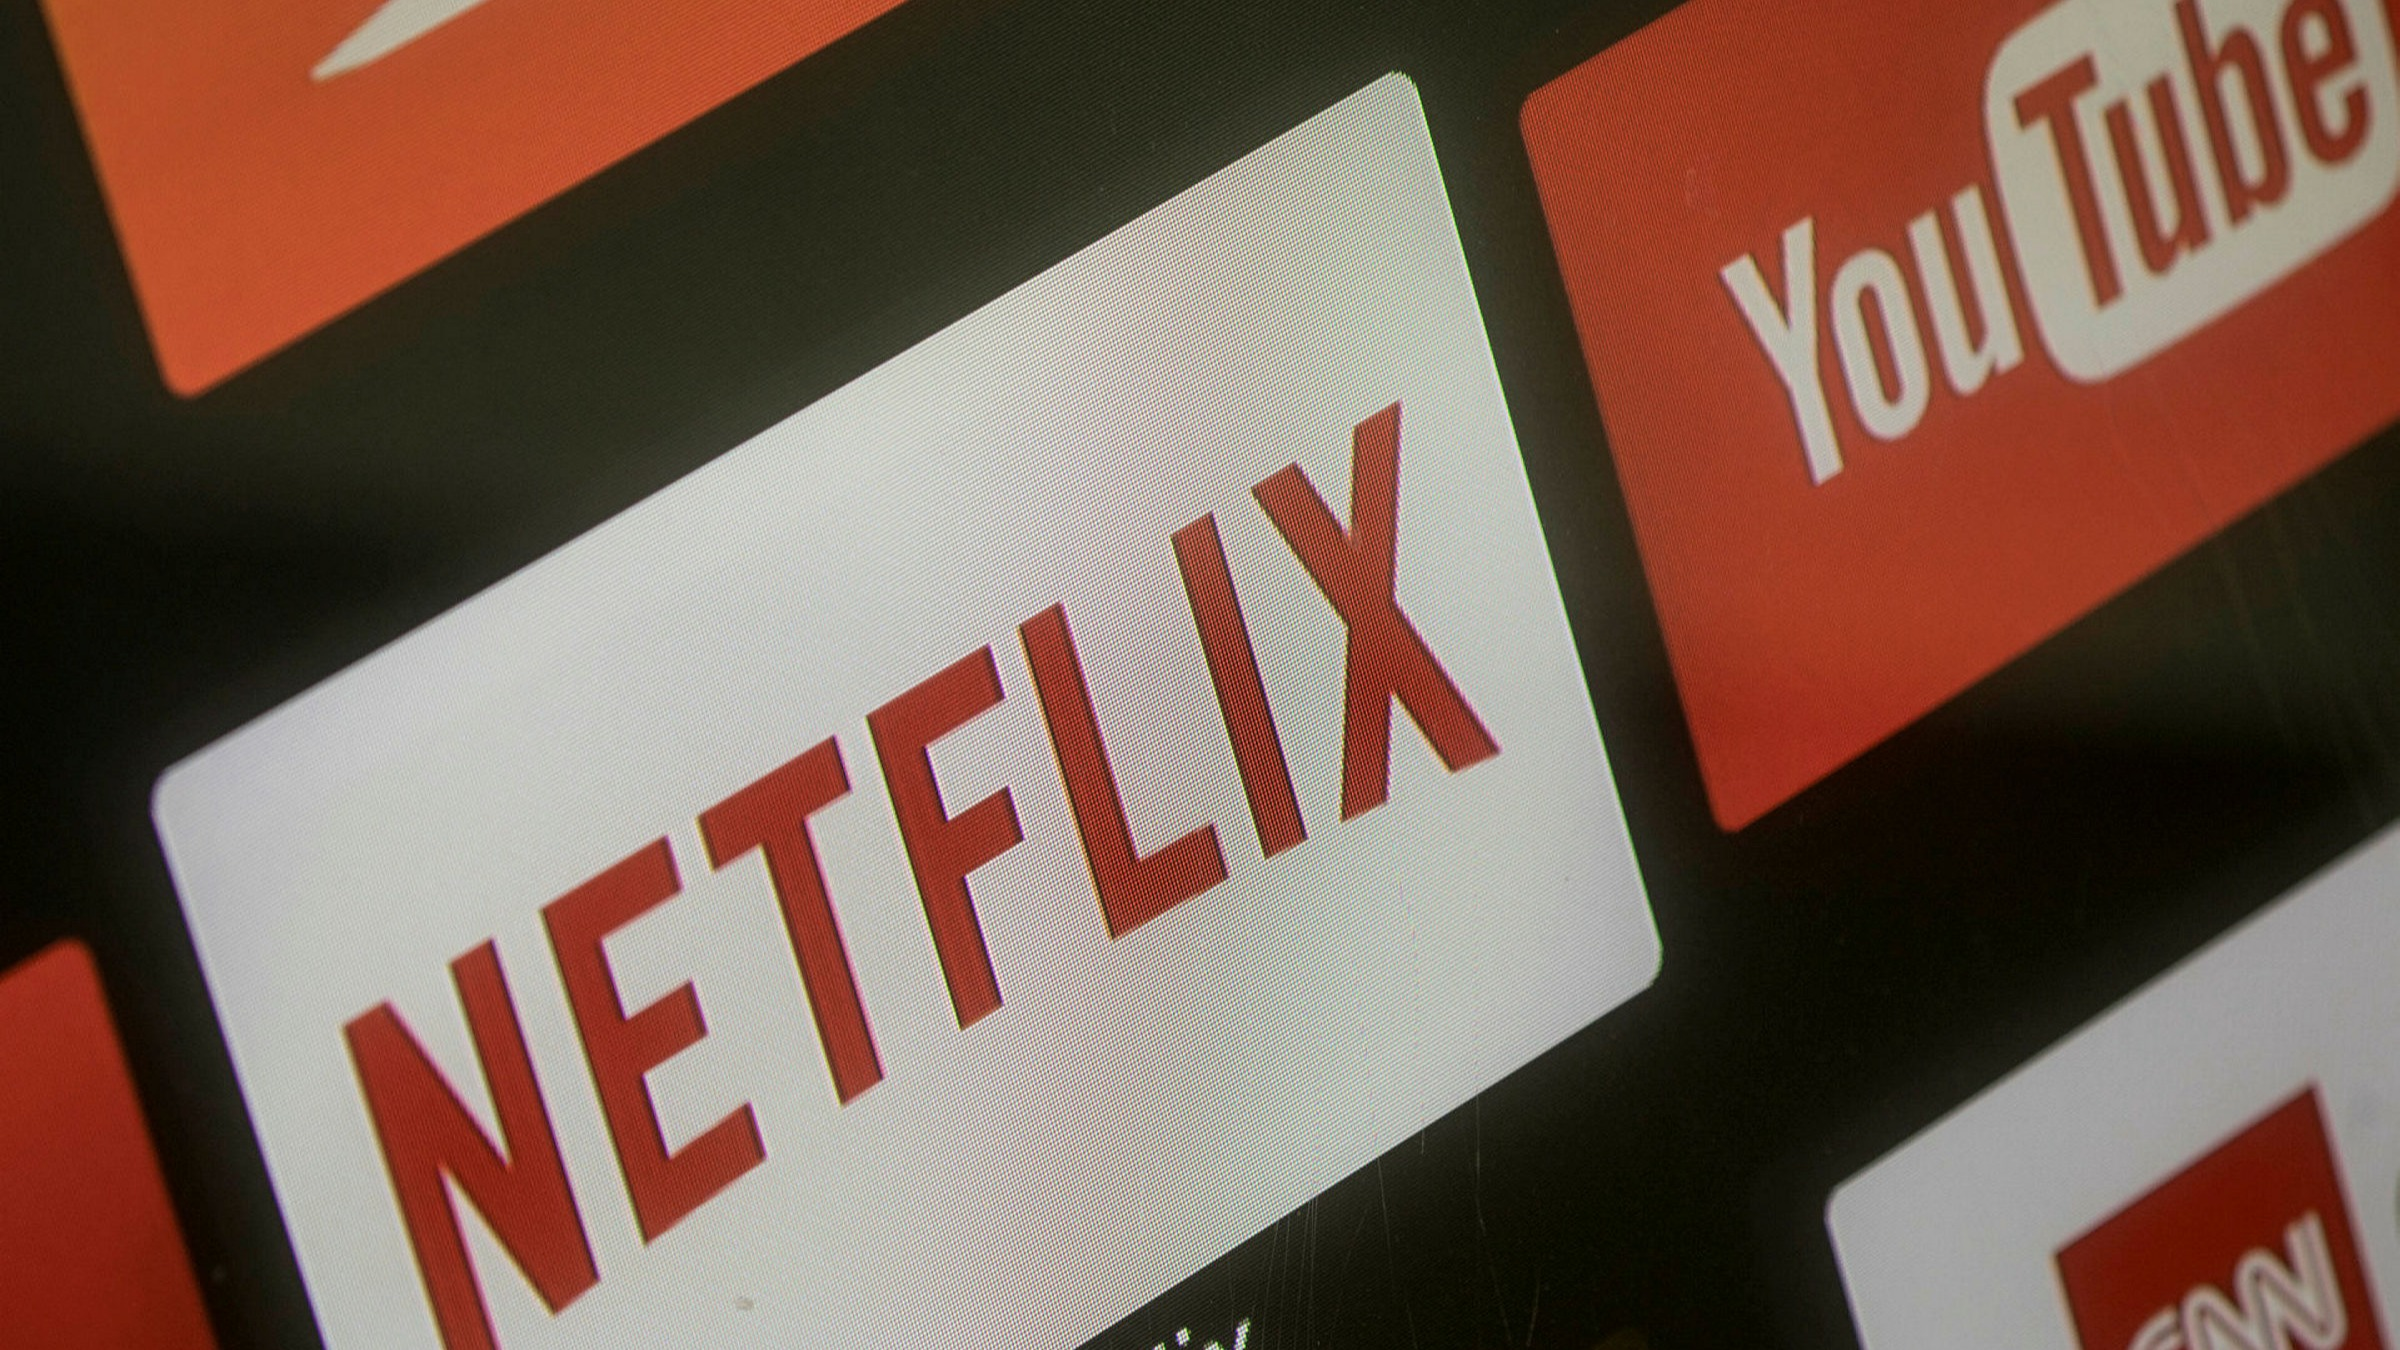 Youtube Amazon And Netflix Cut Picture Quality In Europe Financial Times